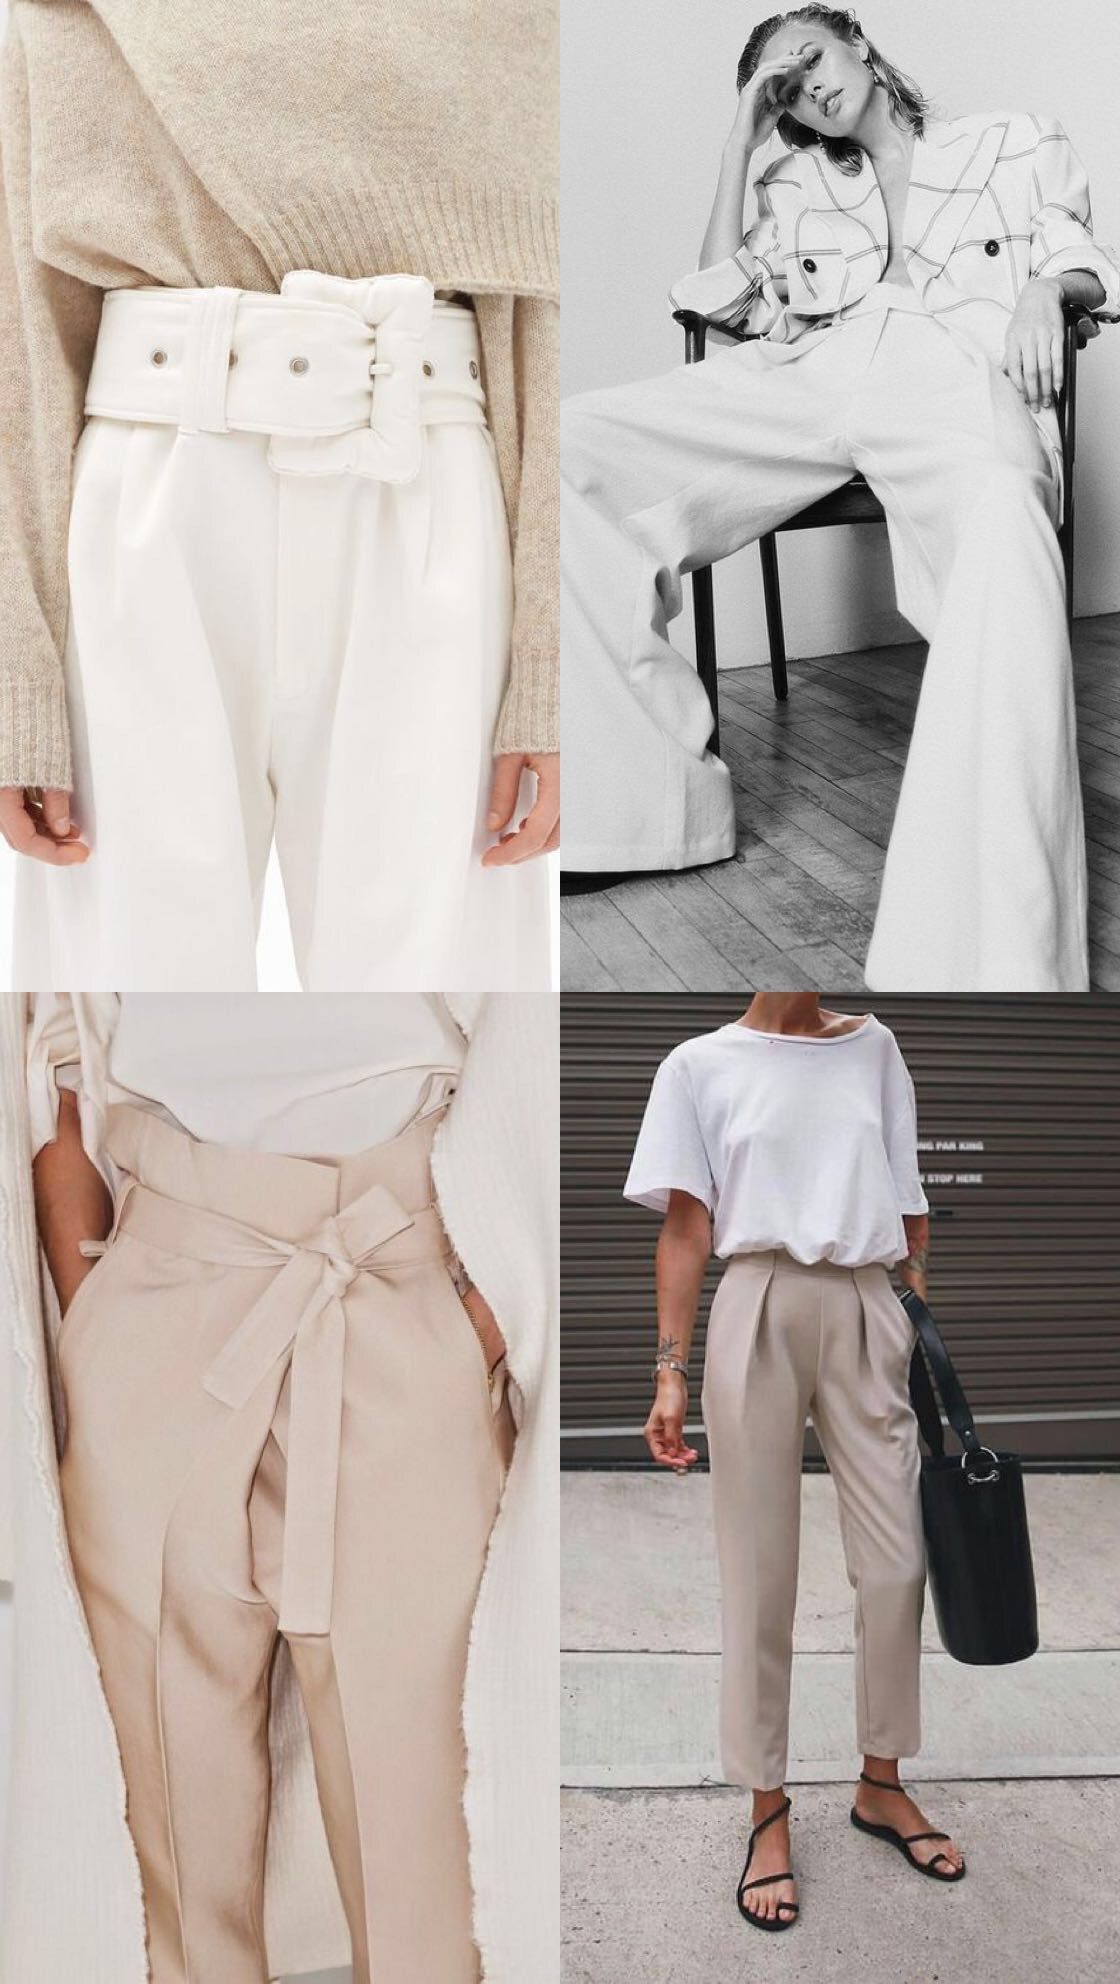 WORKWEAR OUTFIT IDEAS - TAILORED TROUSERS